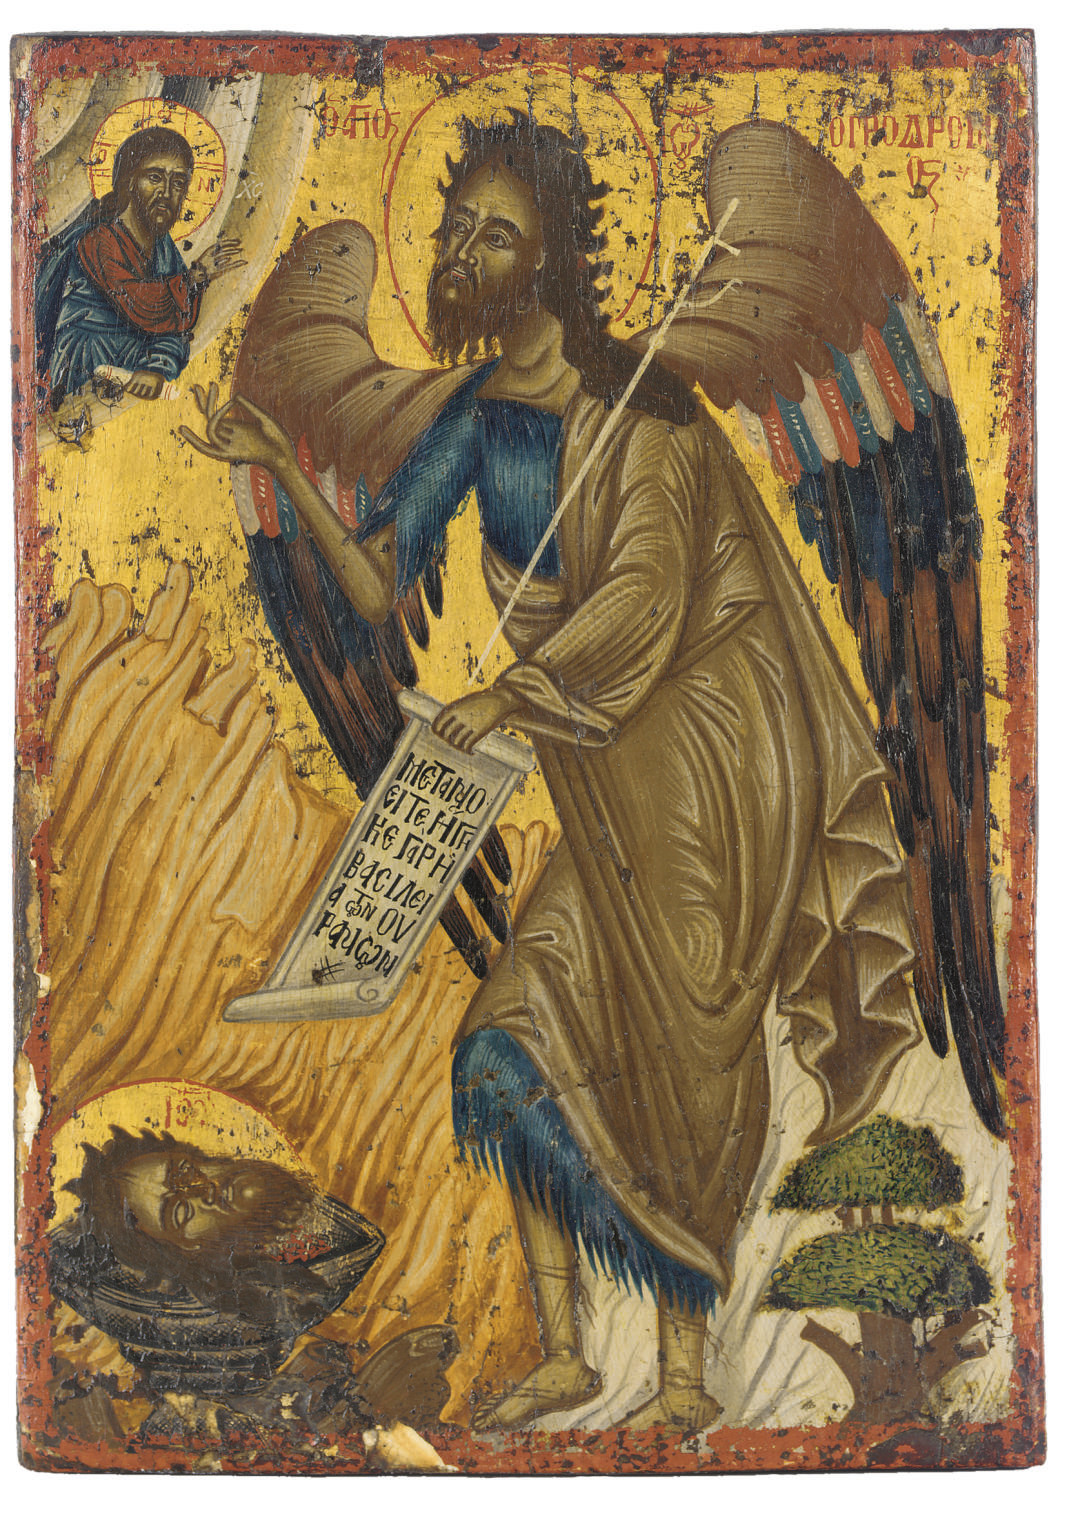 ST. JOHN ANGEL OF THE DESERT